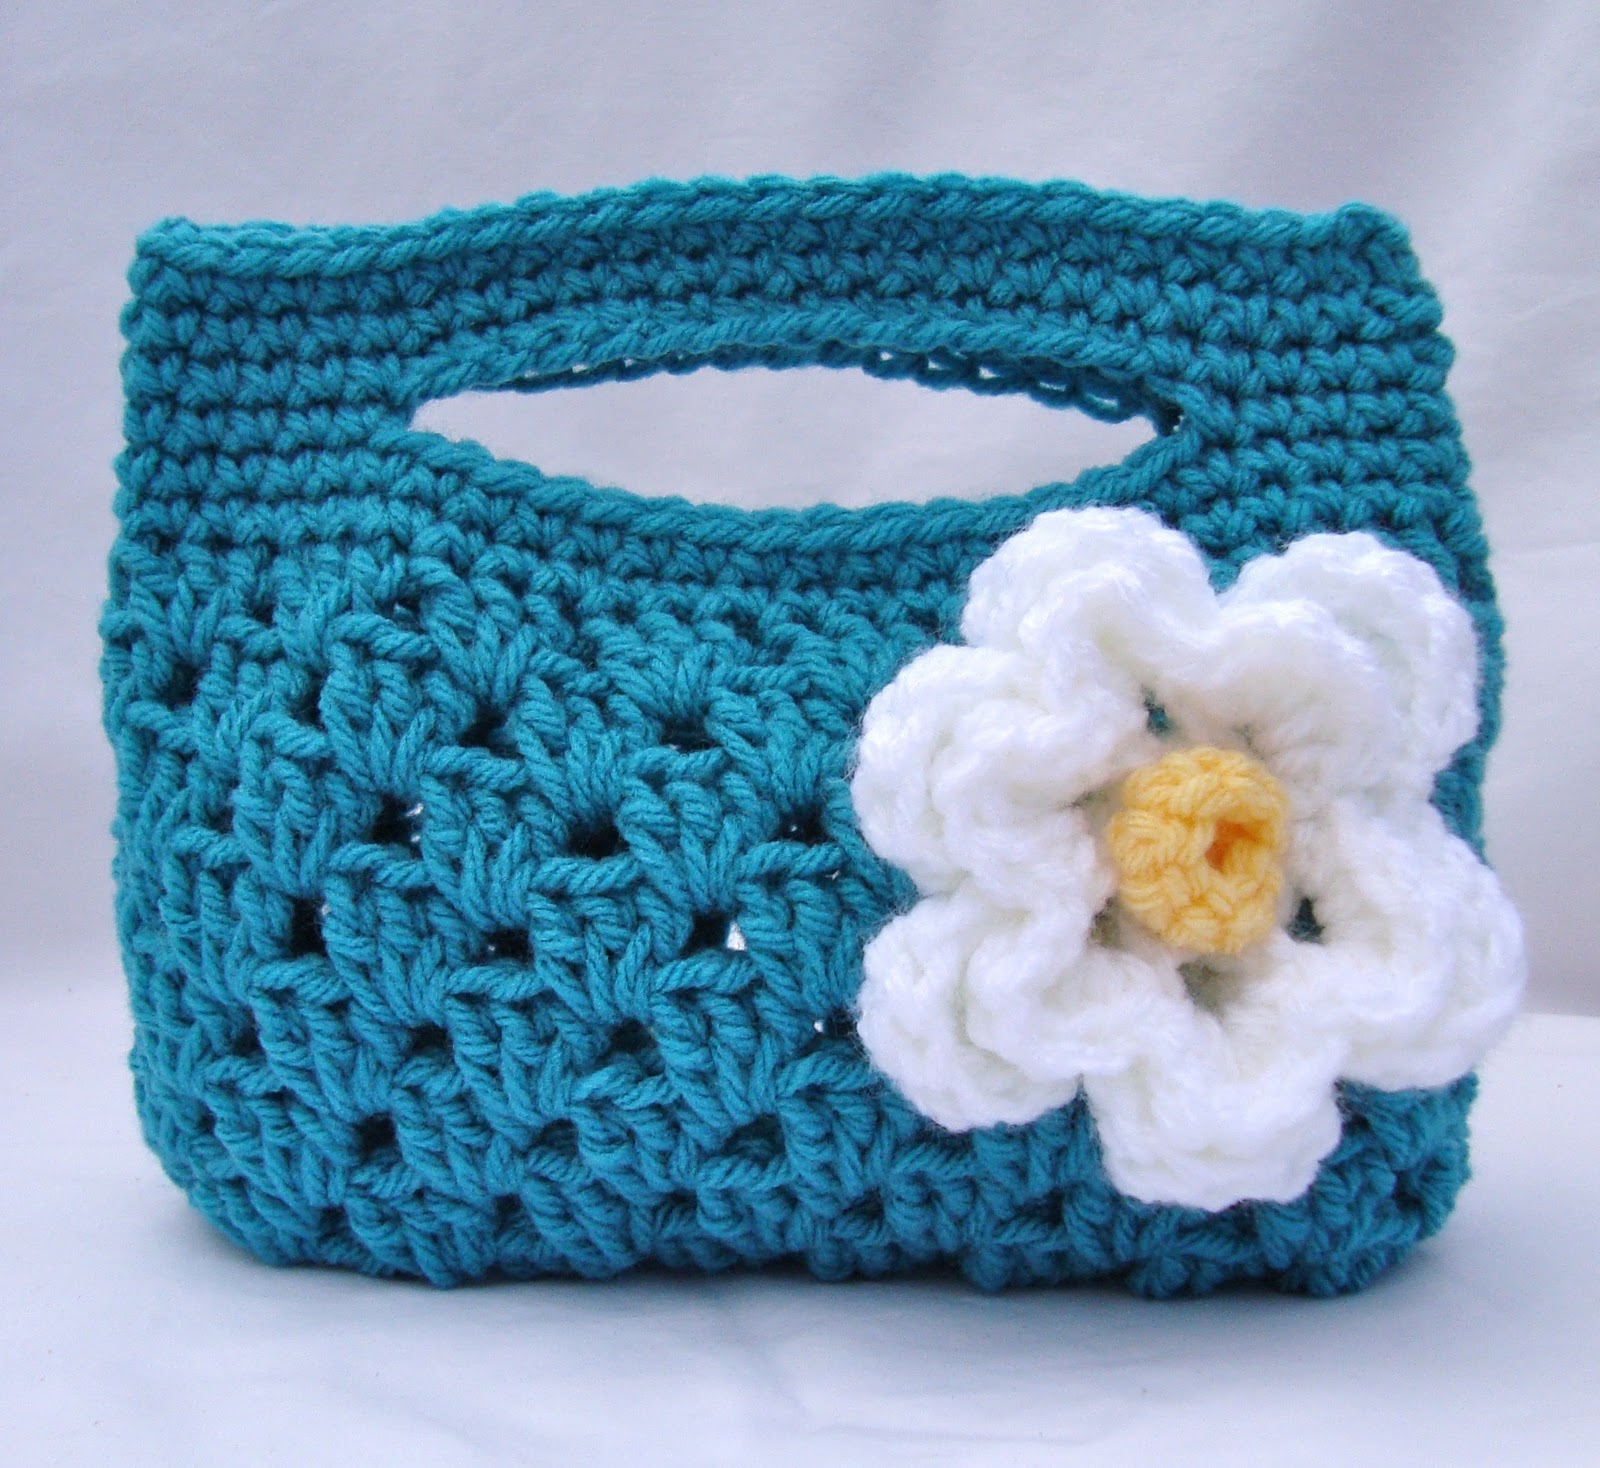 Free Crochet Purse Patterns For Kids : tangled happy: Granny Stripe Boutique Bag